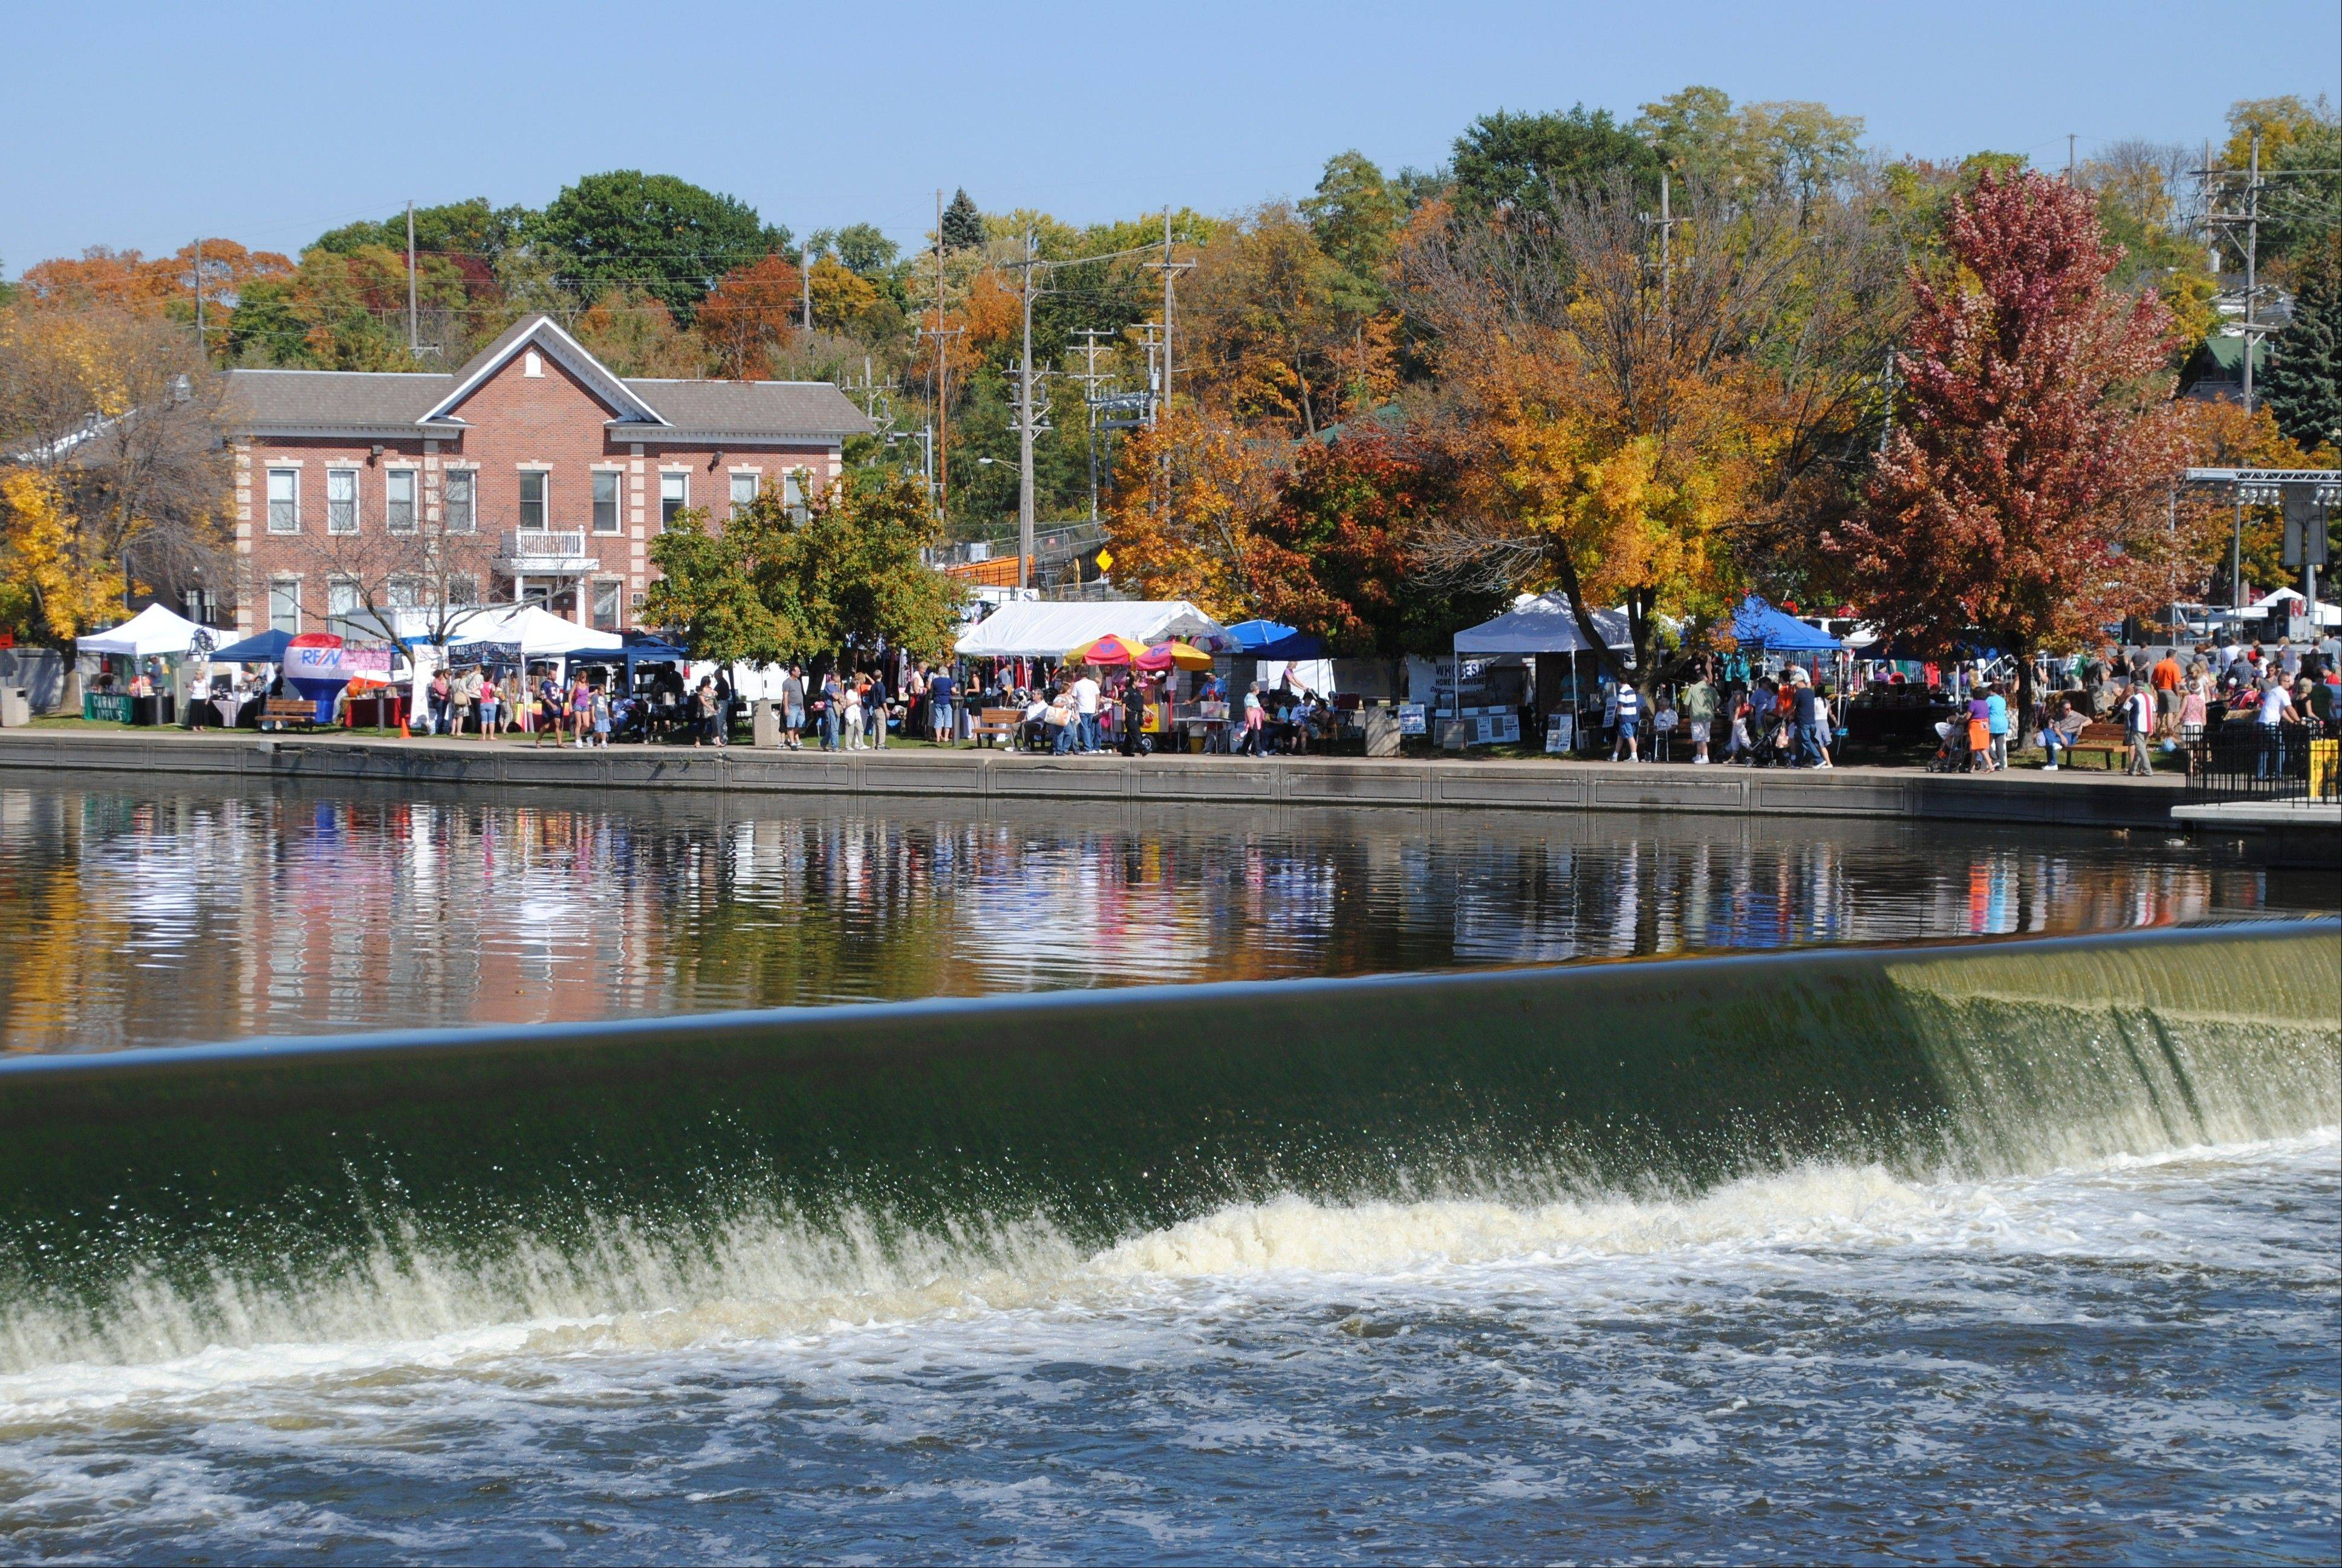 Scarecrow Fest is held on the banks of the Fox River. Traditionally, more than 150 scarecrows are entered in the contest. The St. Charles festival draws about 150,000 visitors each year to the city's downtown.